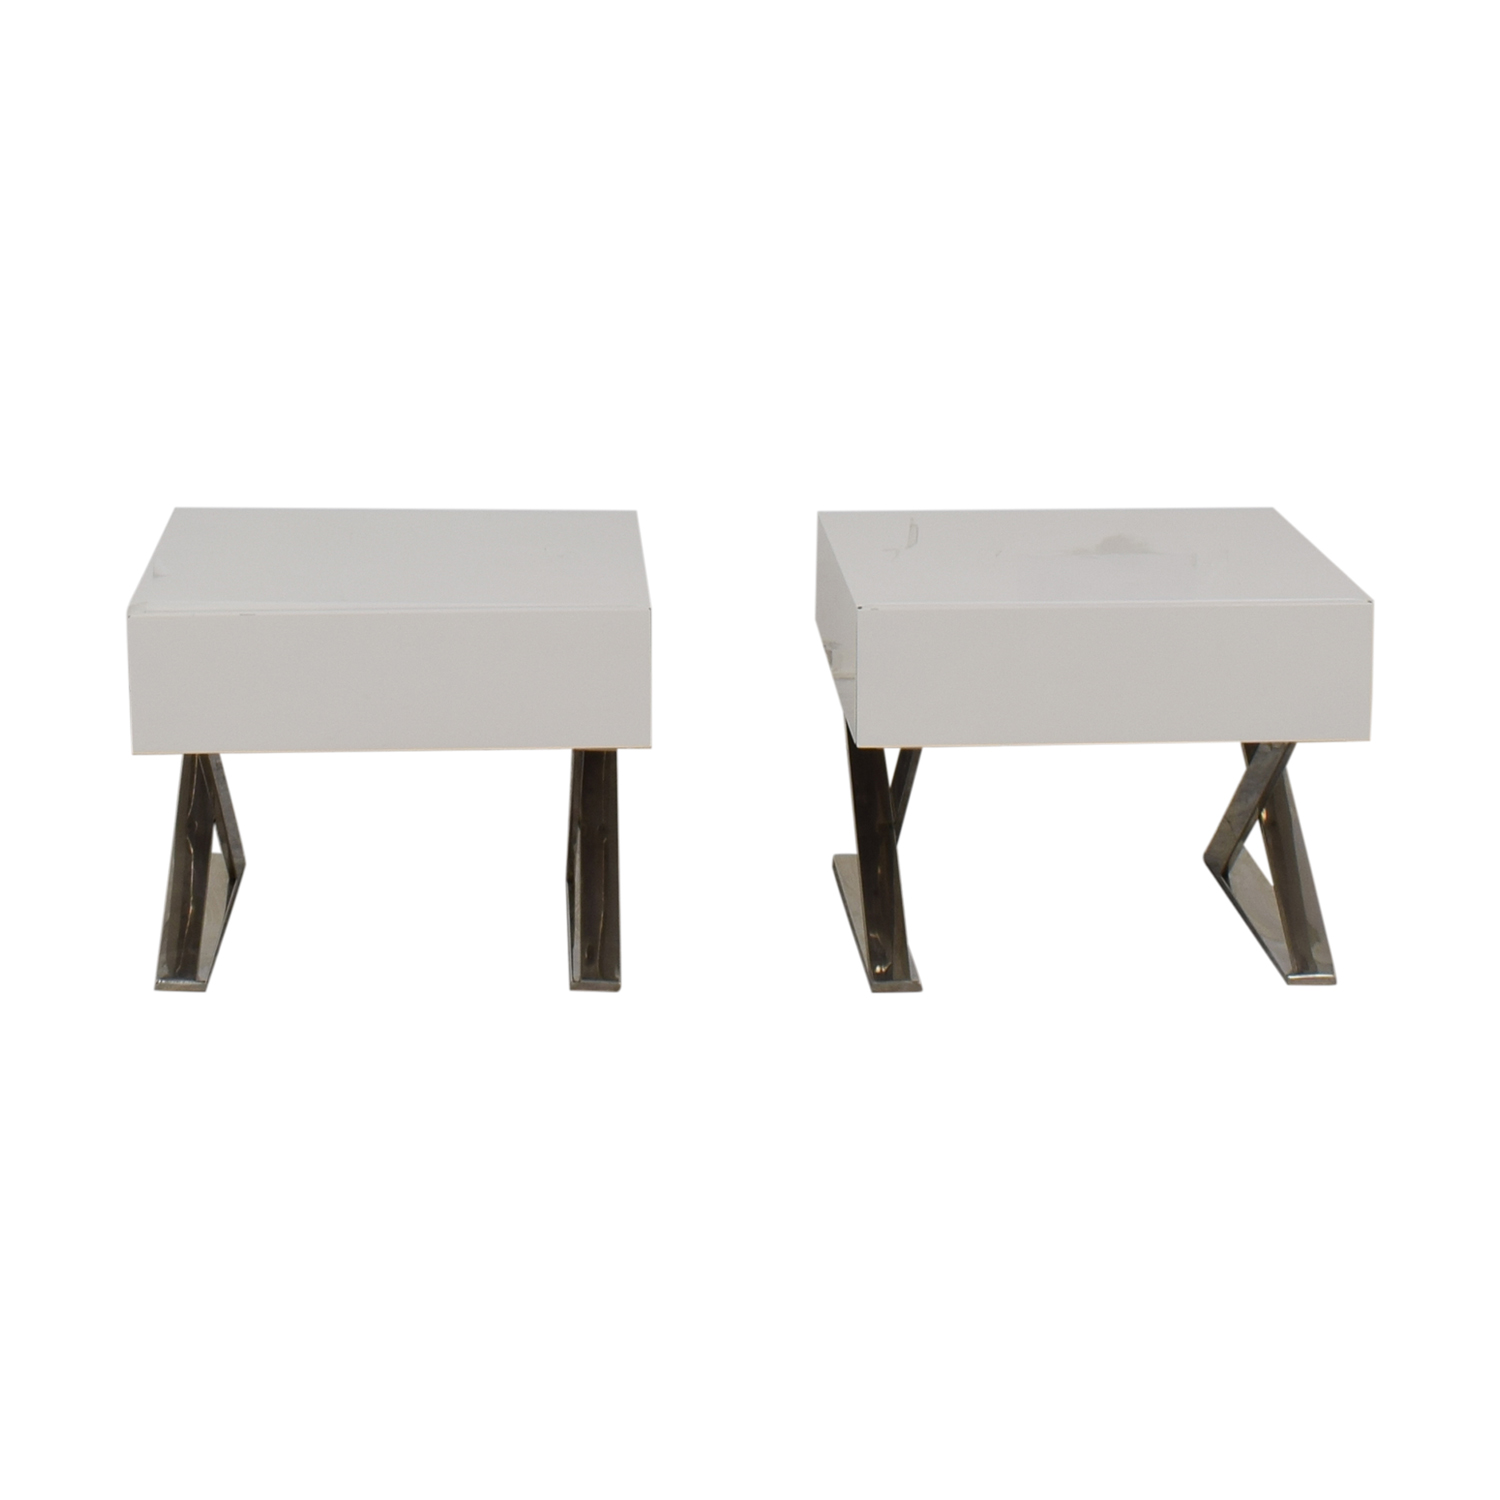 LexMod LexMod Sector White Single Drawer End Tables